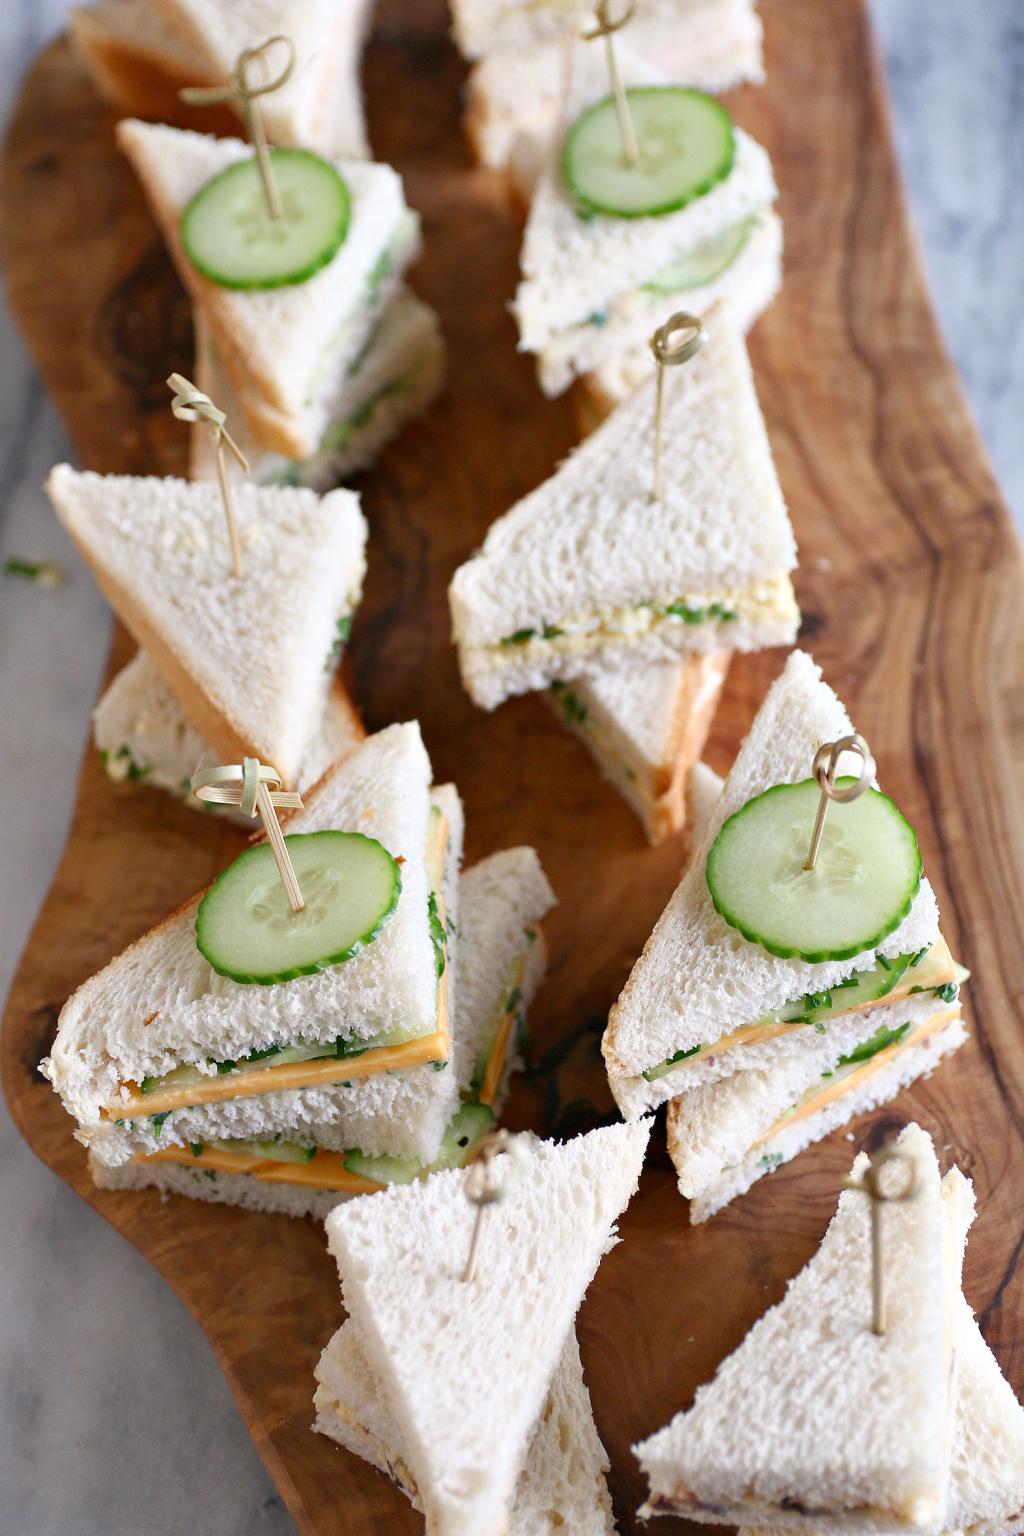 Bedwelming Food Friday | high tea sandwiches ⋆ Beautylab.nl @IA74